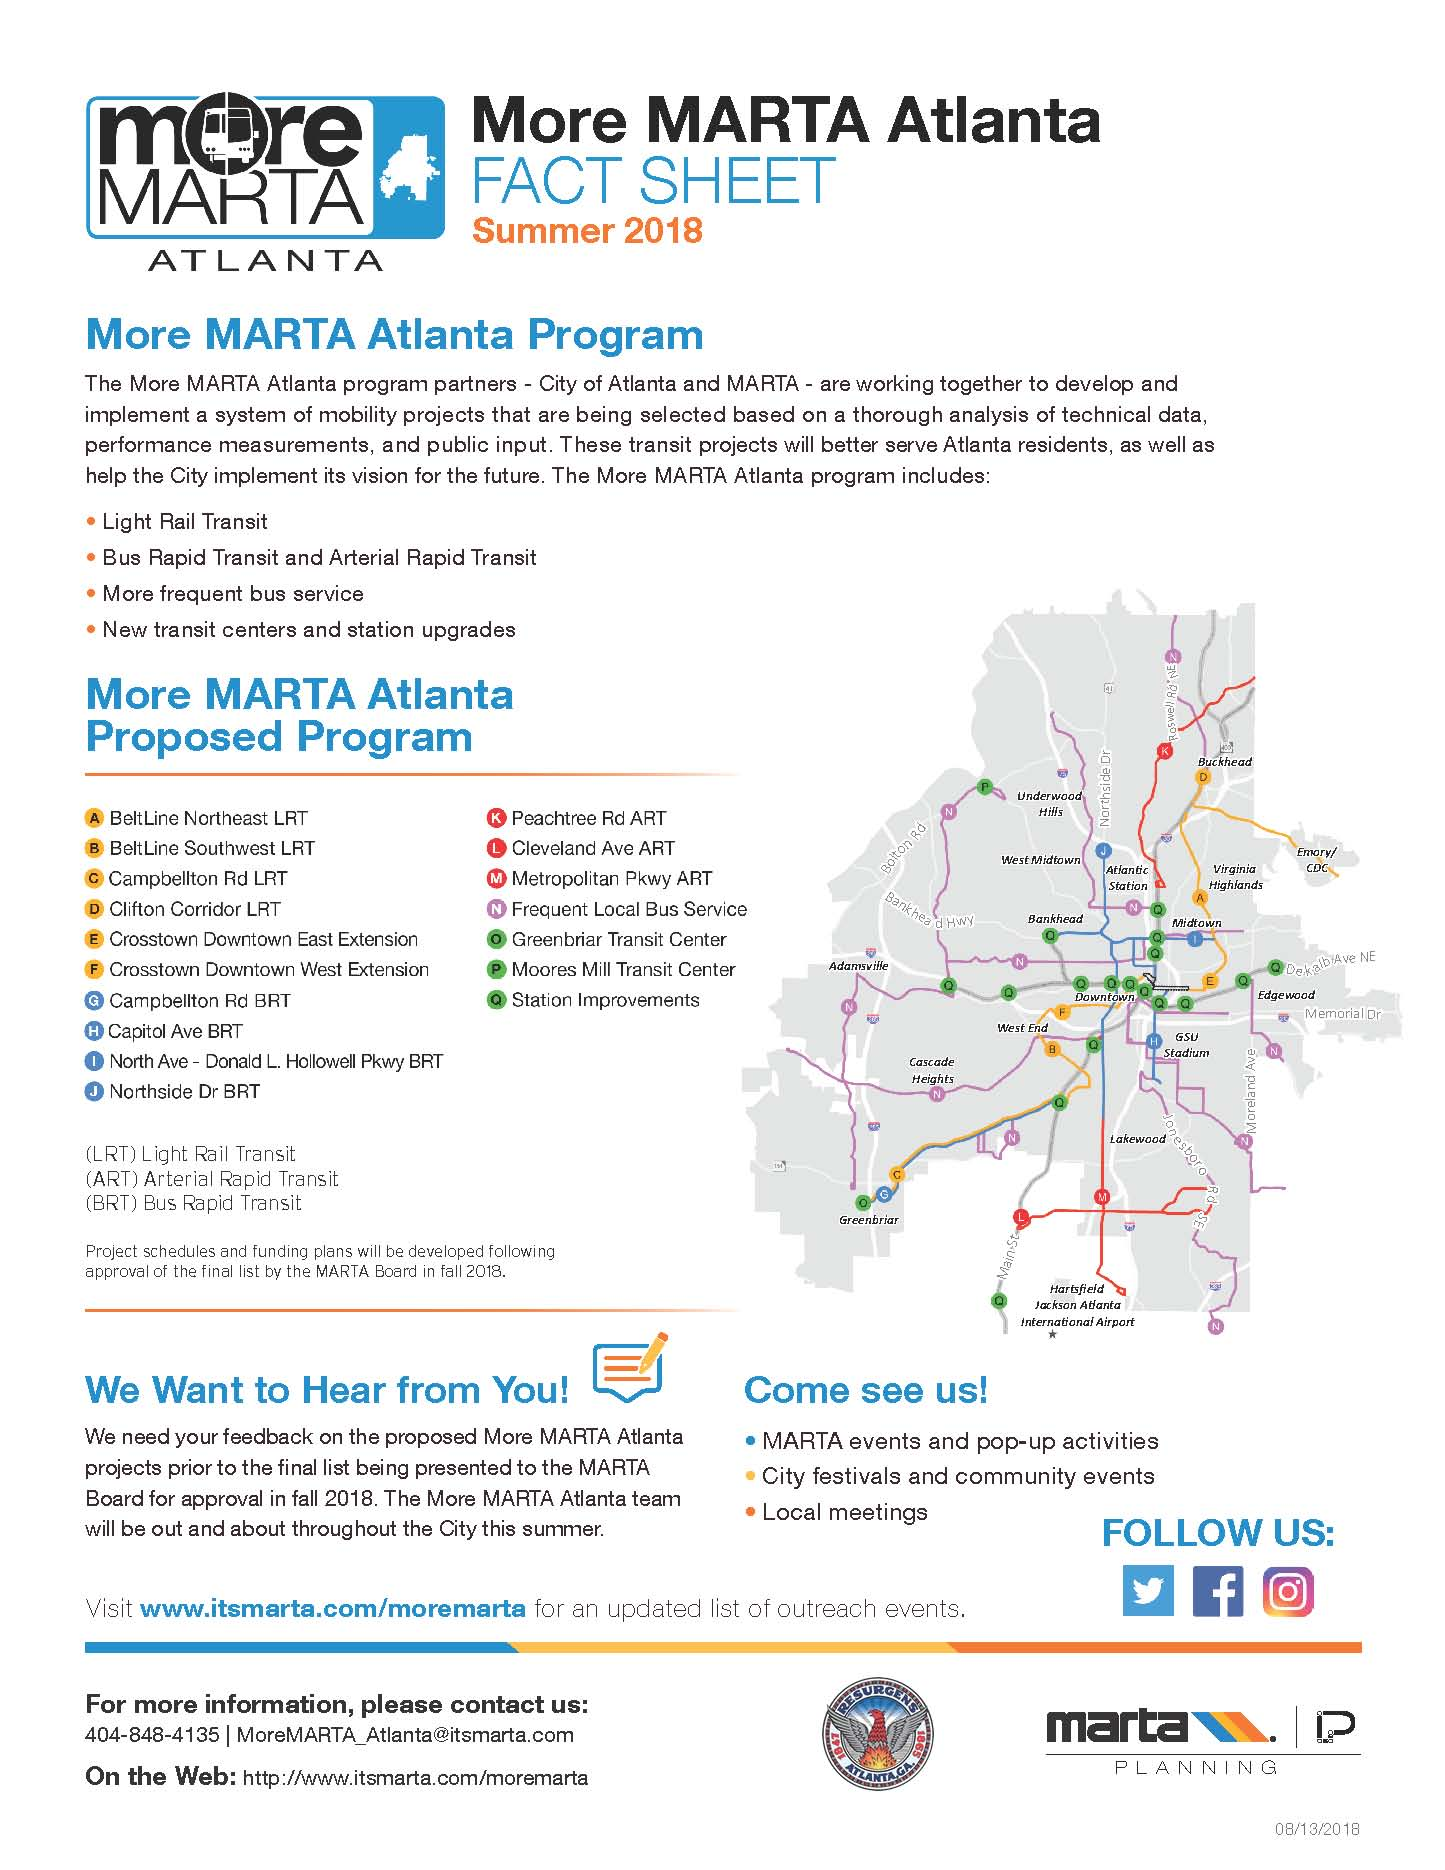 City of Atlanta More MARTA Fact Sheet Page 3